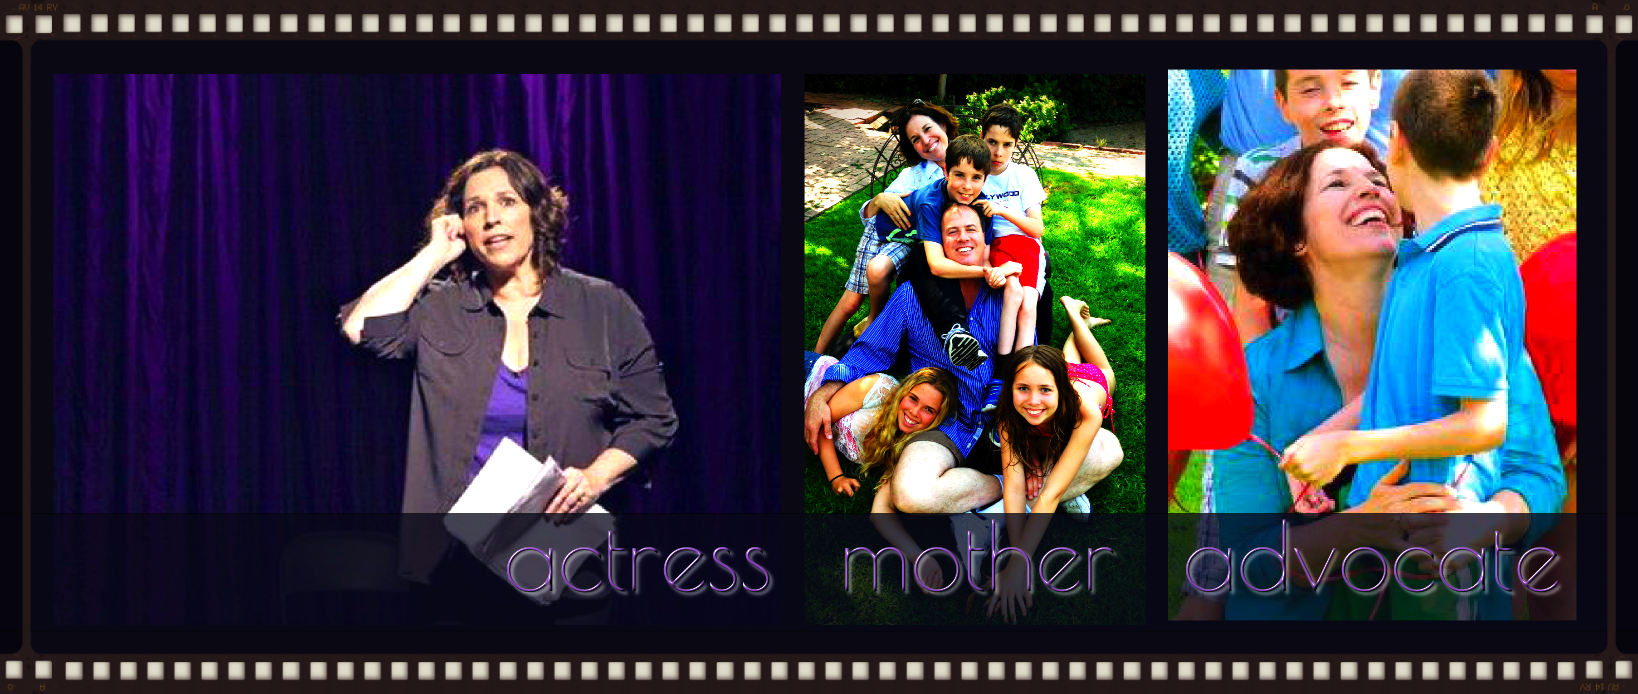 Alice Manning - ACTRESS. MOTHER. ADVOCATE.